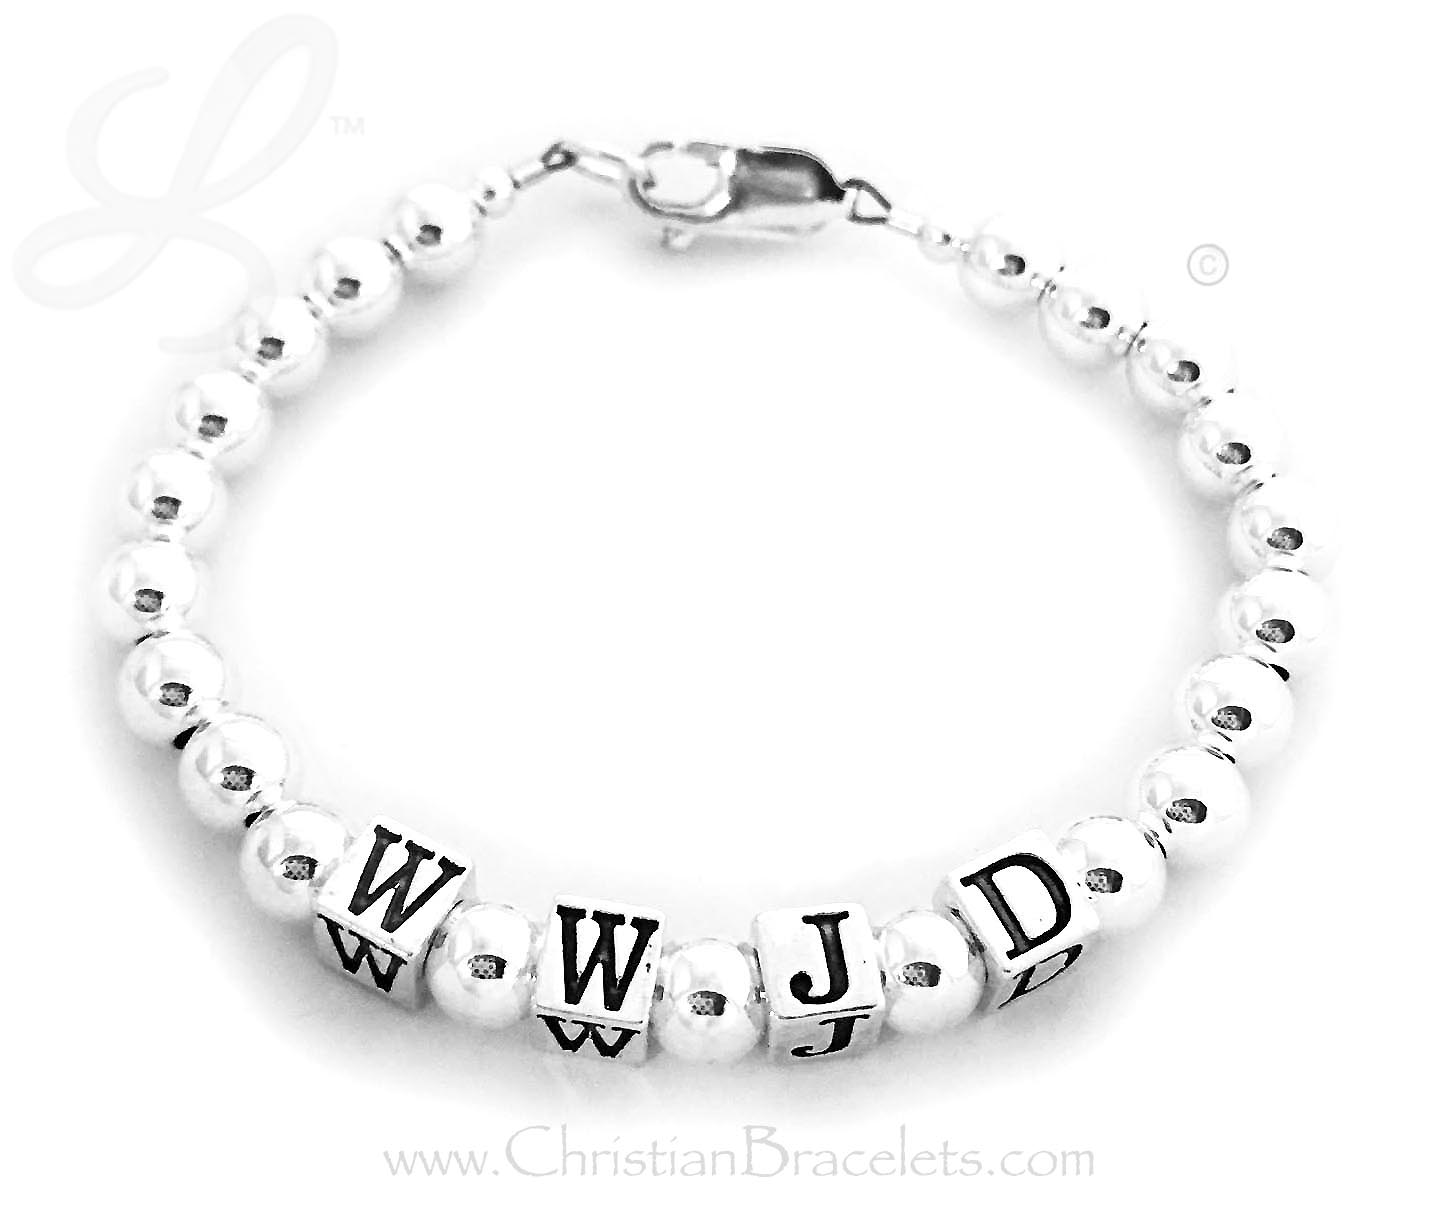 CB-WWJD-9 What Would Jesus Do bracelet - WWJDSize: 6""